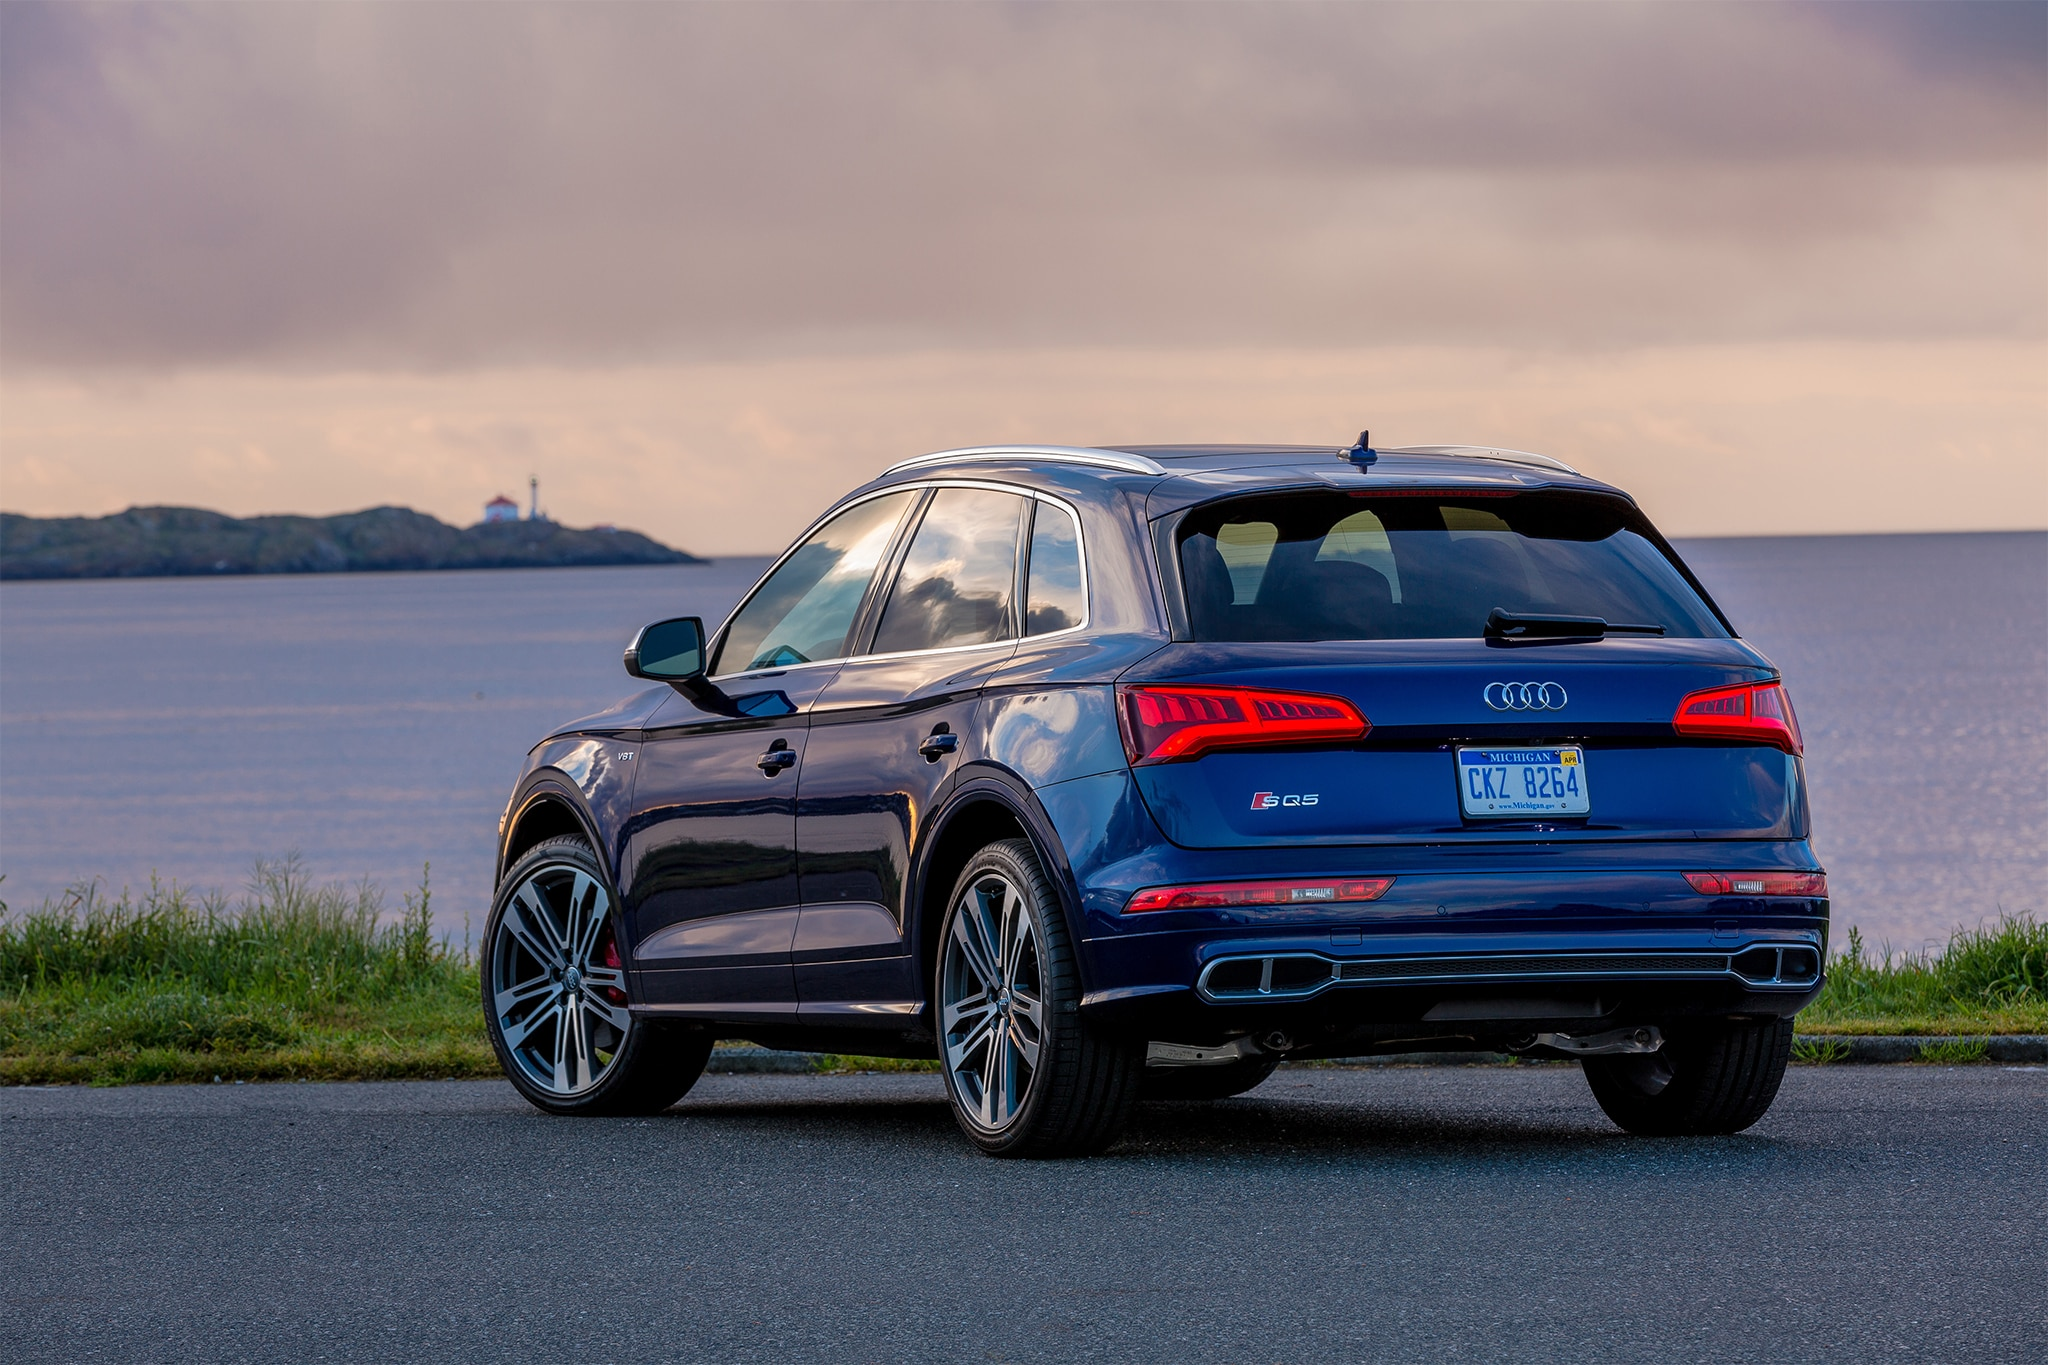 Audi 0 60 >> 2018 Audi SQ5 First Drive Review | Automobile Magazine